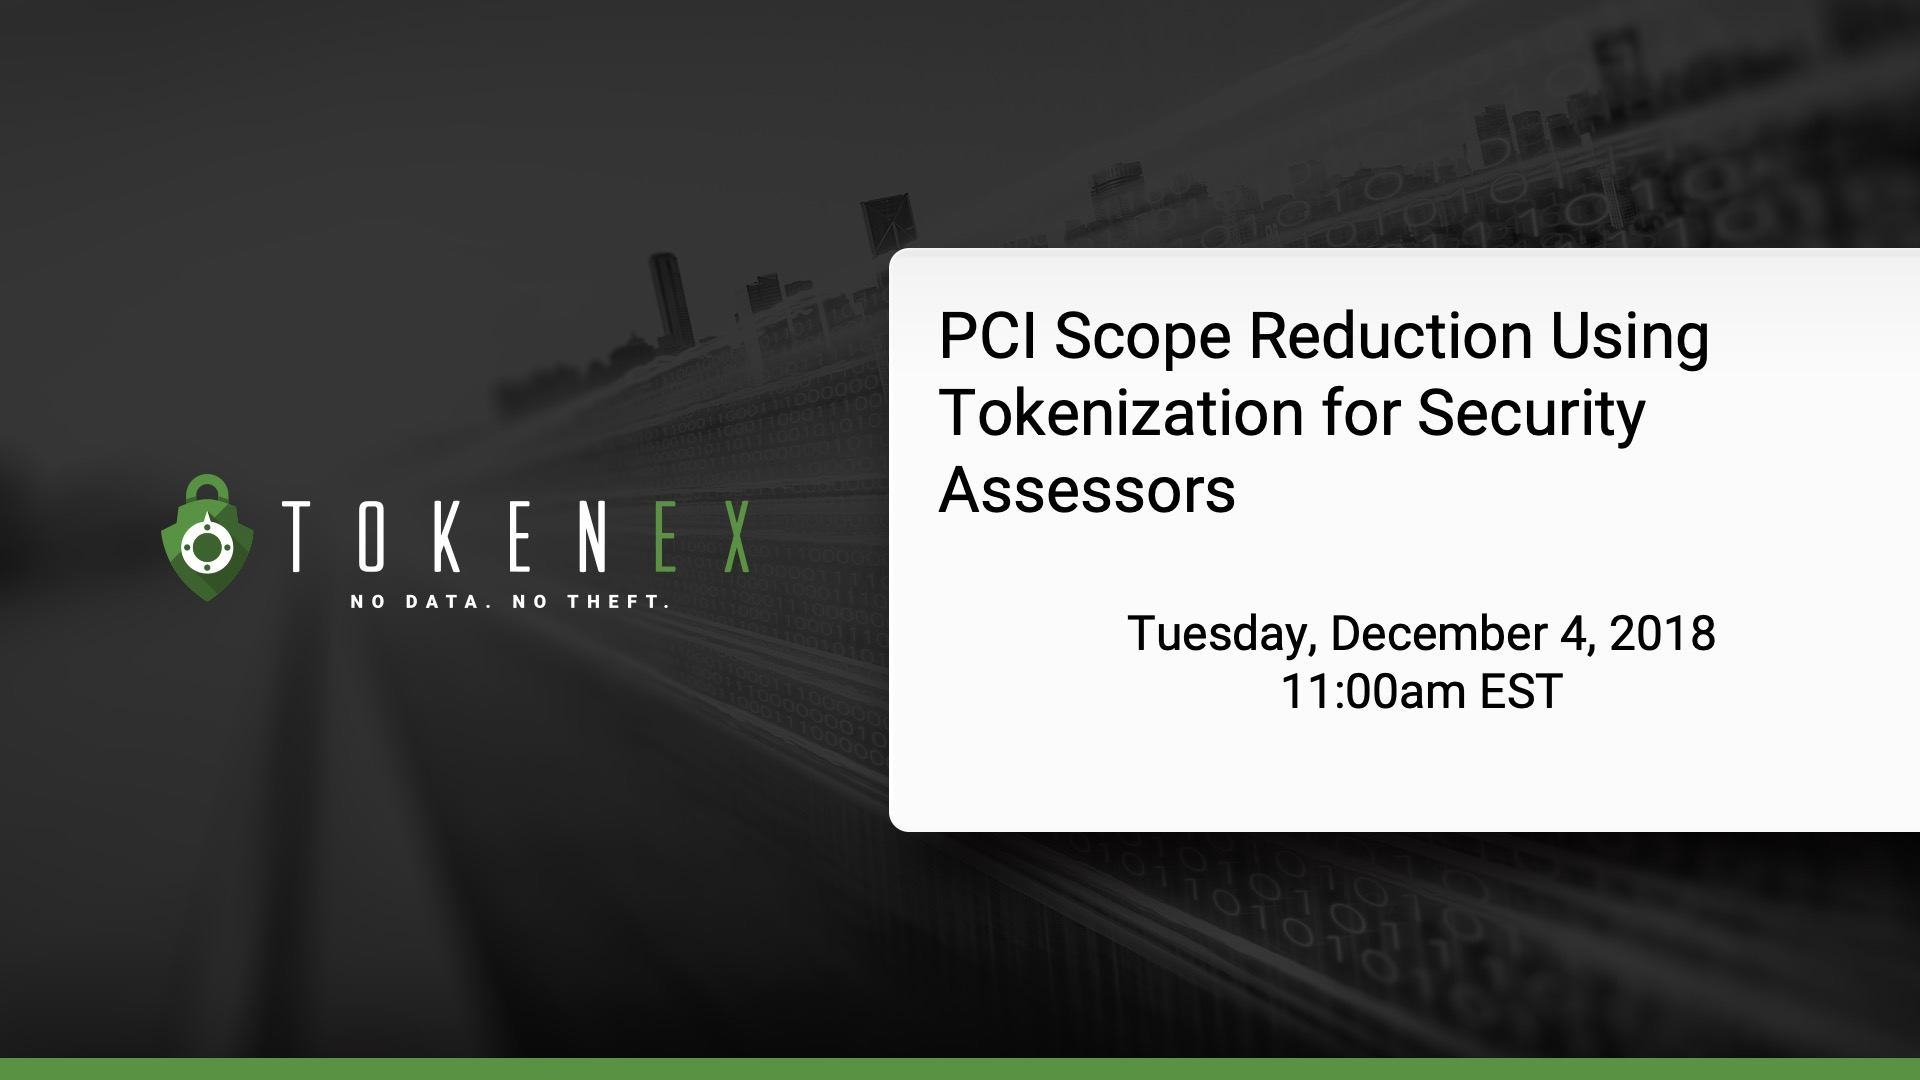 PCI Scope Reduction Using Tokenization for Security Assessors (QSA, ISA)